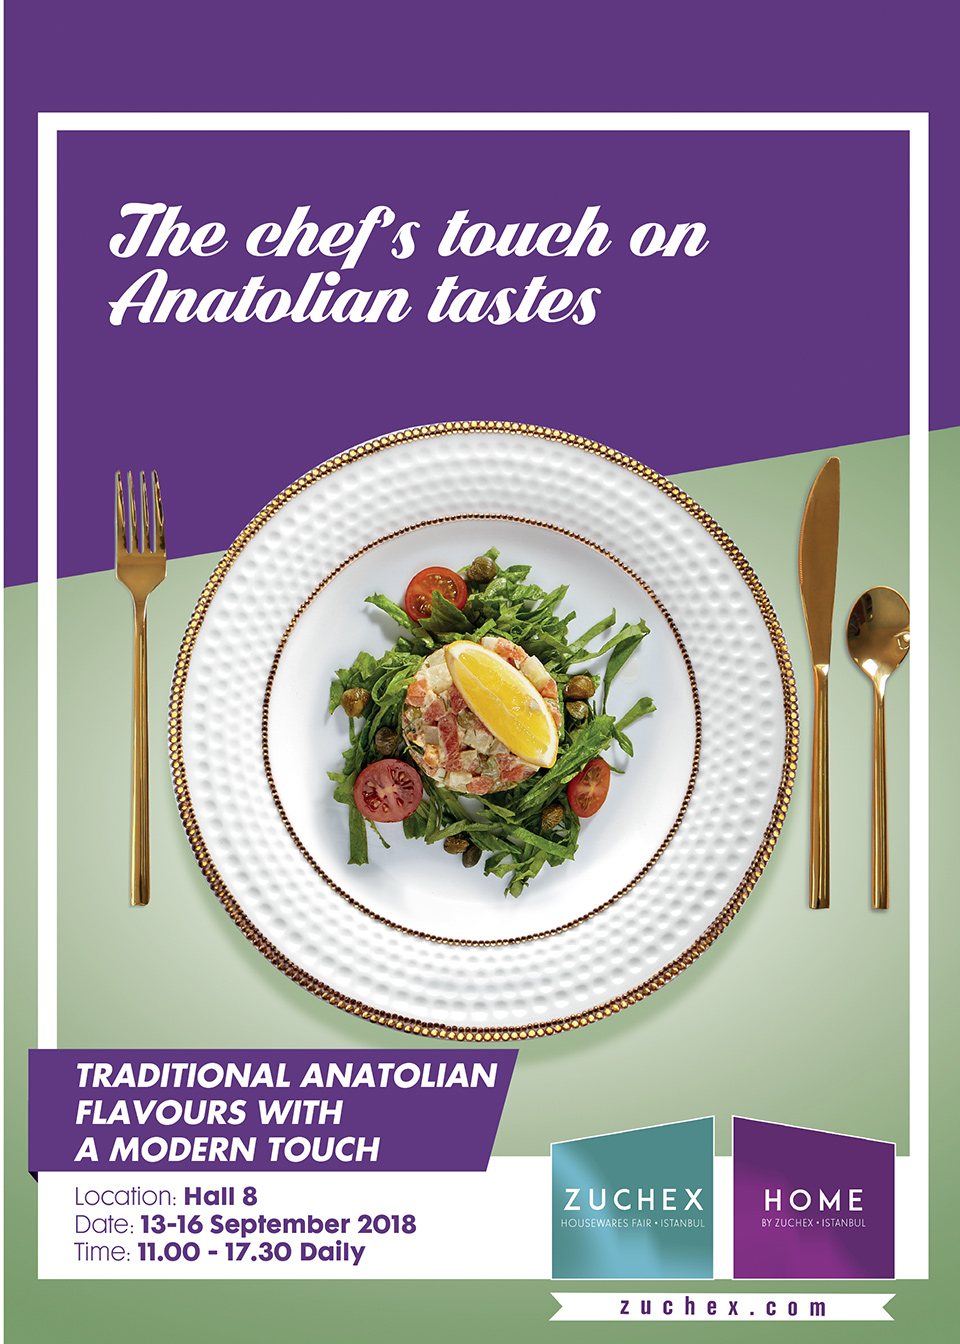 The chef's touch on Anatolian tastes